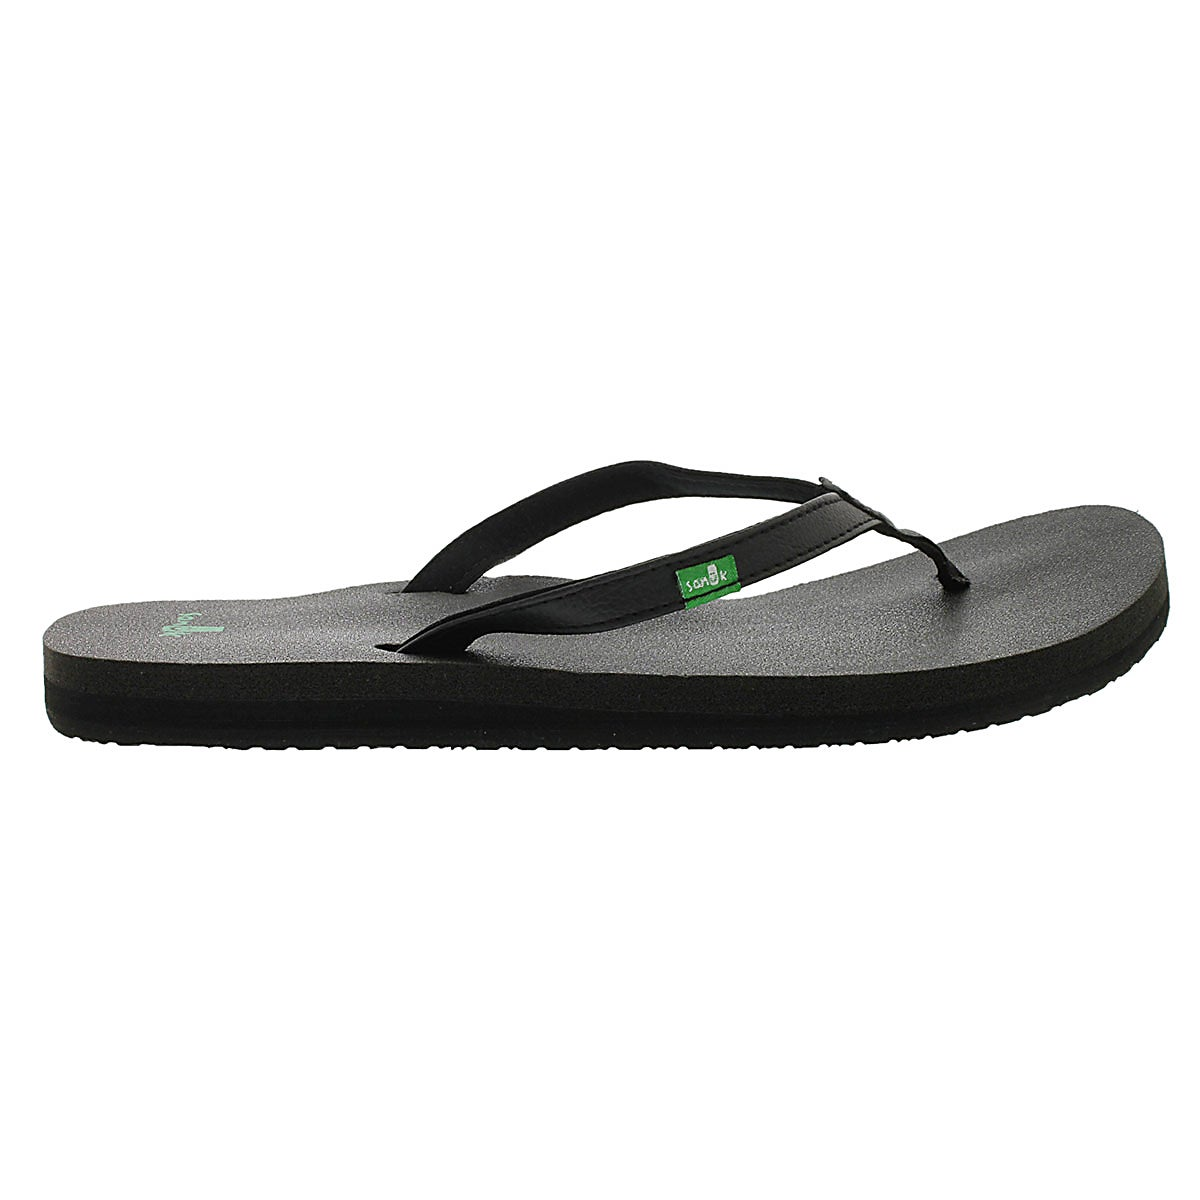 Lds Yoga Joy black flip flop